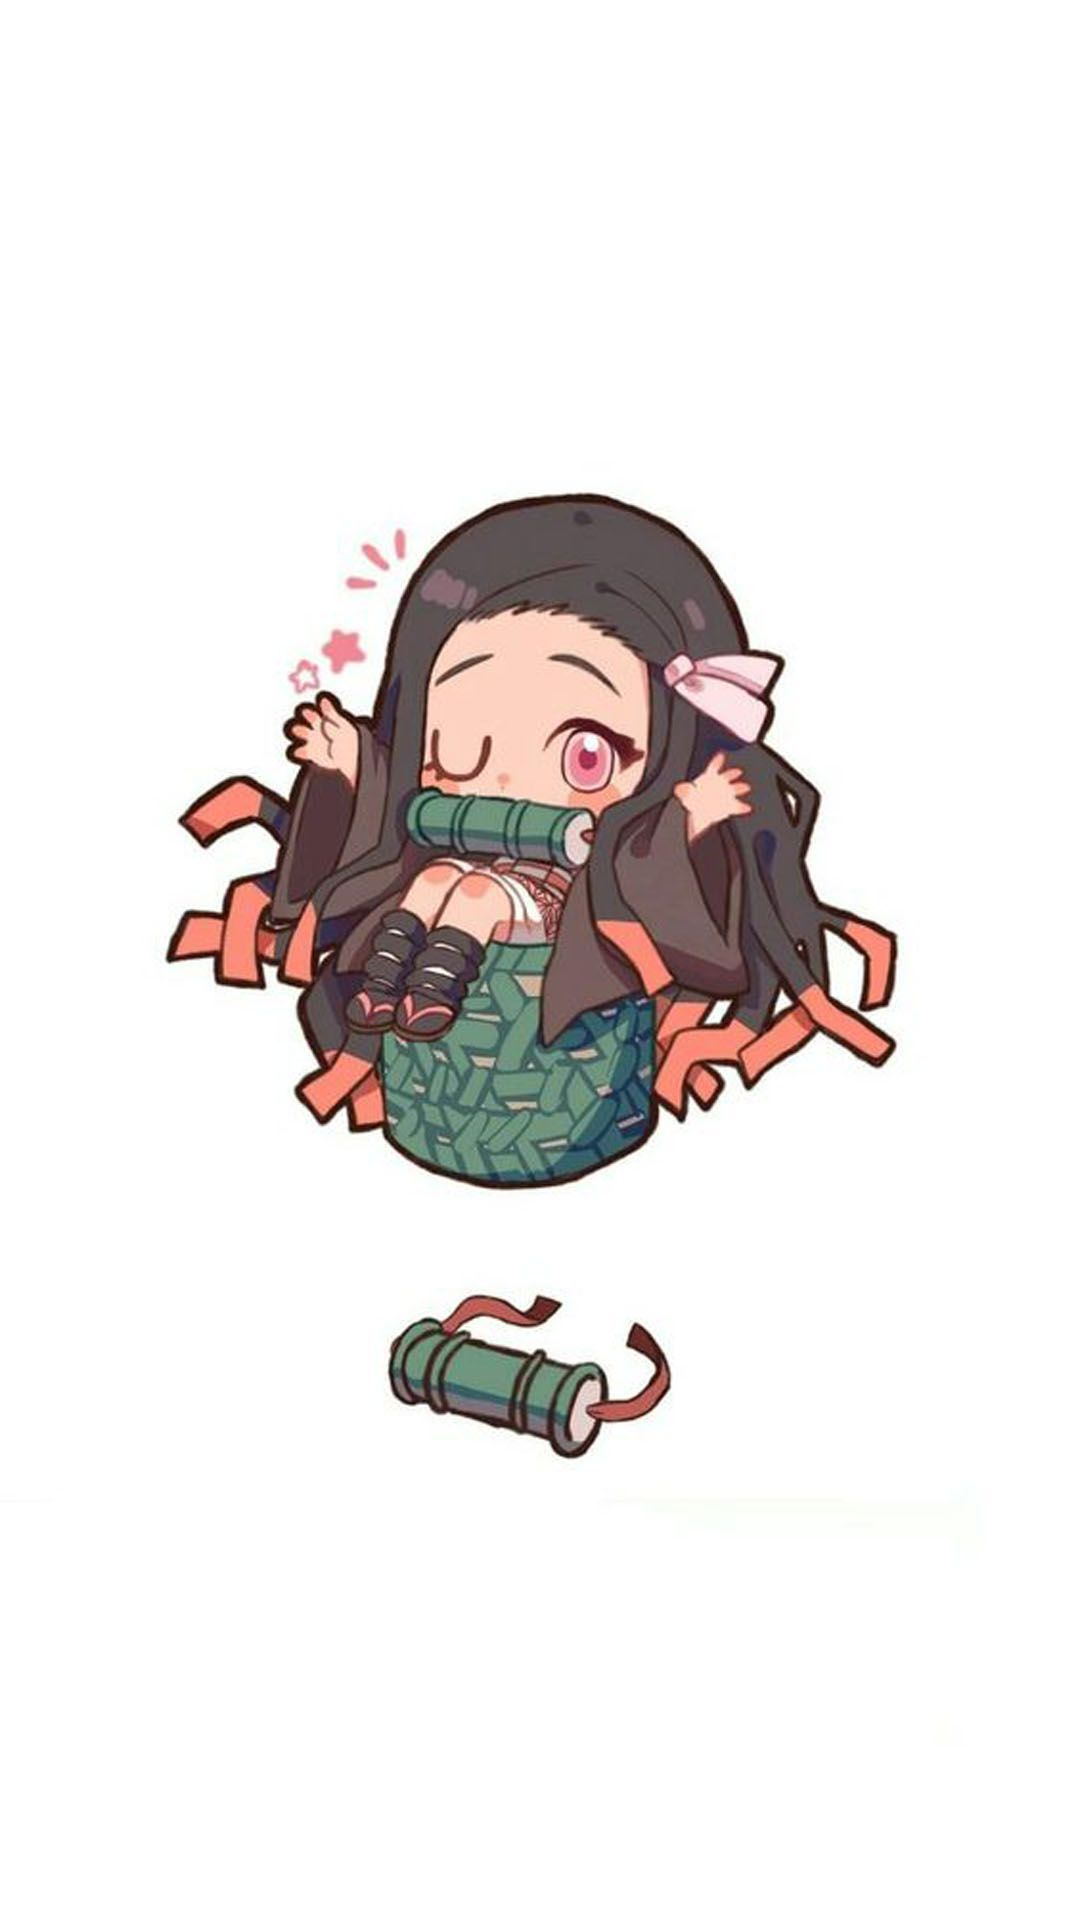 Nezuko Kamado Wallpaper Chibi Wallpaper Anime Chibi Anime Demon